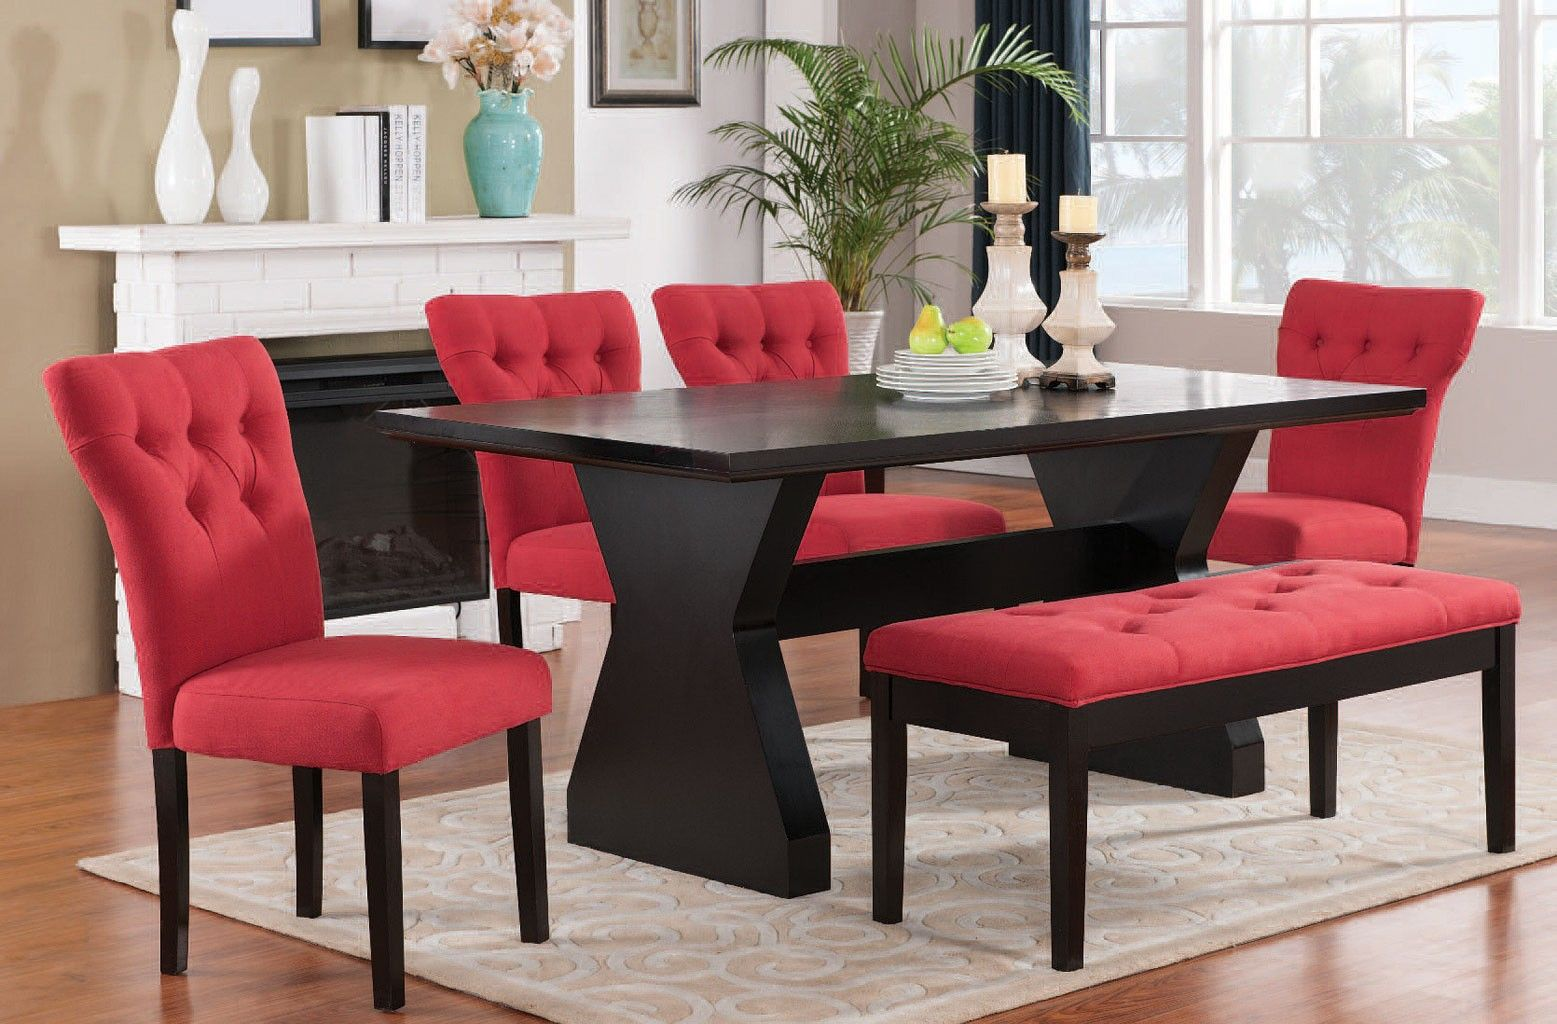 Red Dining Room Chairs Effie Dining Room Set W Red Chairs Ngmfbpn